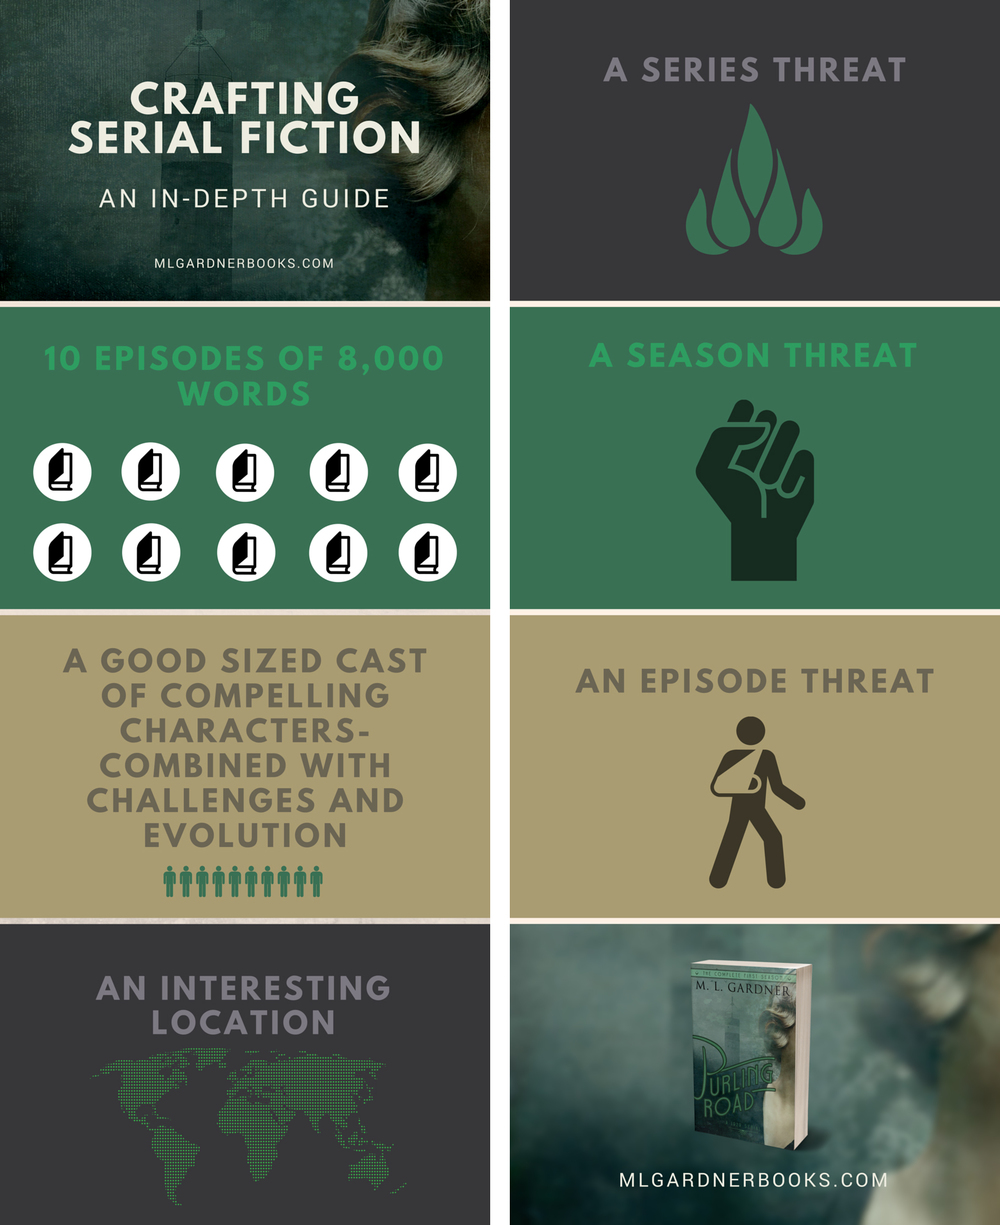 Crafting Serial Fiction: An In-Depth Guide || MLGardnerBooks.com